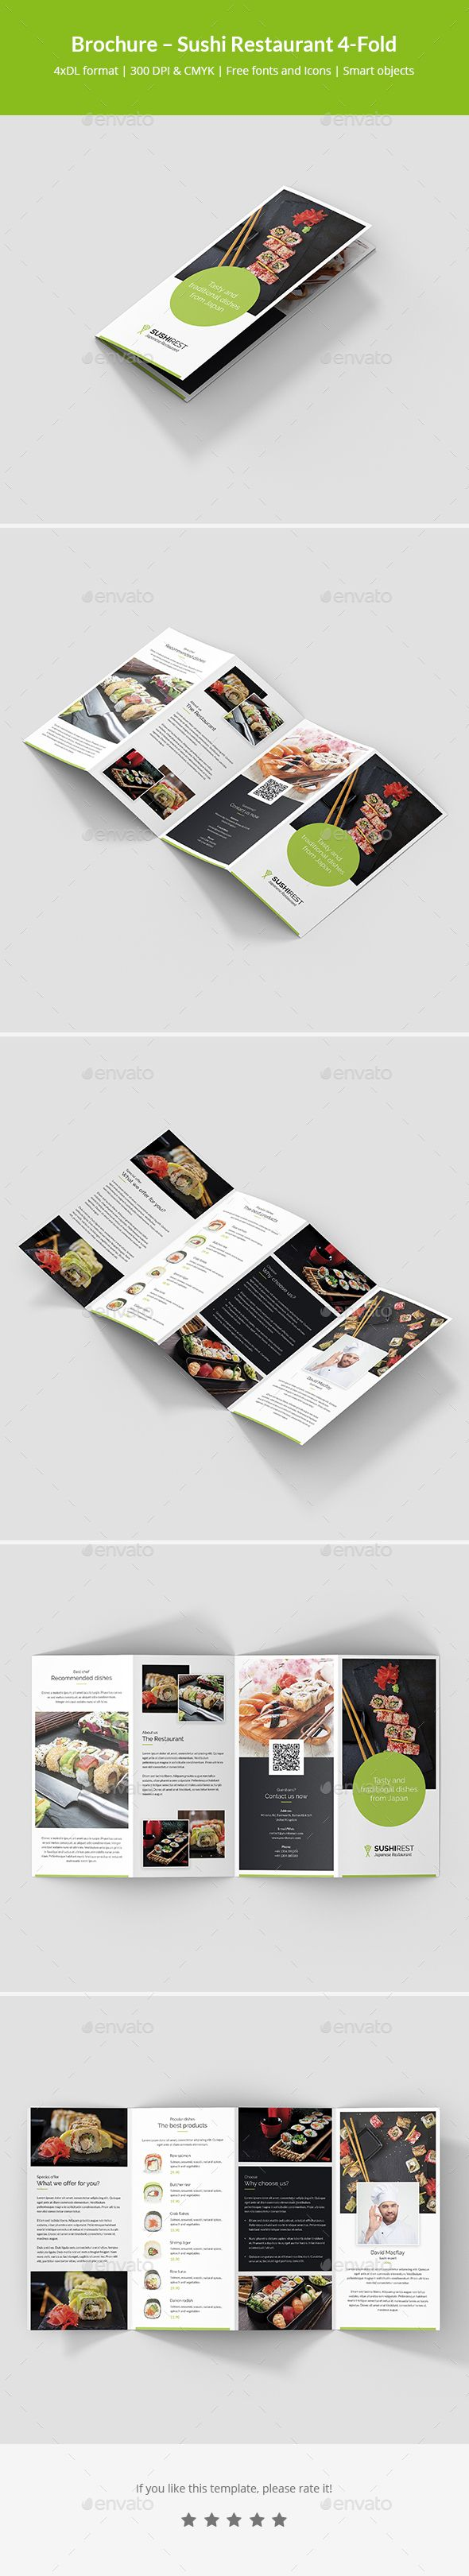 Brochure template is designed for use in many businesses. You can use this template for: restaurants, sushi, Japanese food, Chinese food, sushi catering, as well as restaurants serving pizza, kebab and other dishes. This template is fully editable. You can use different fonts, colors and backgrounds. Put your photos in the template and promote your business.